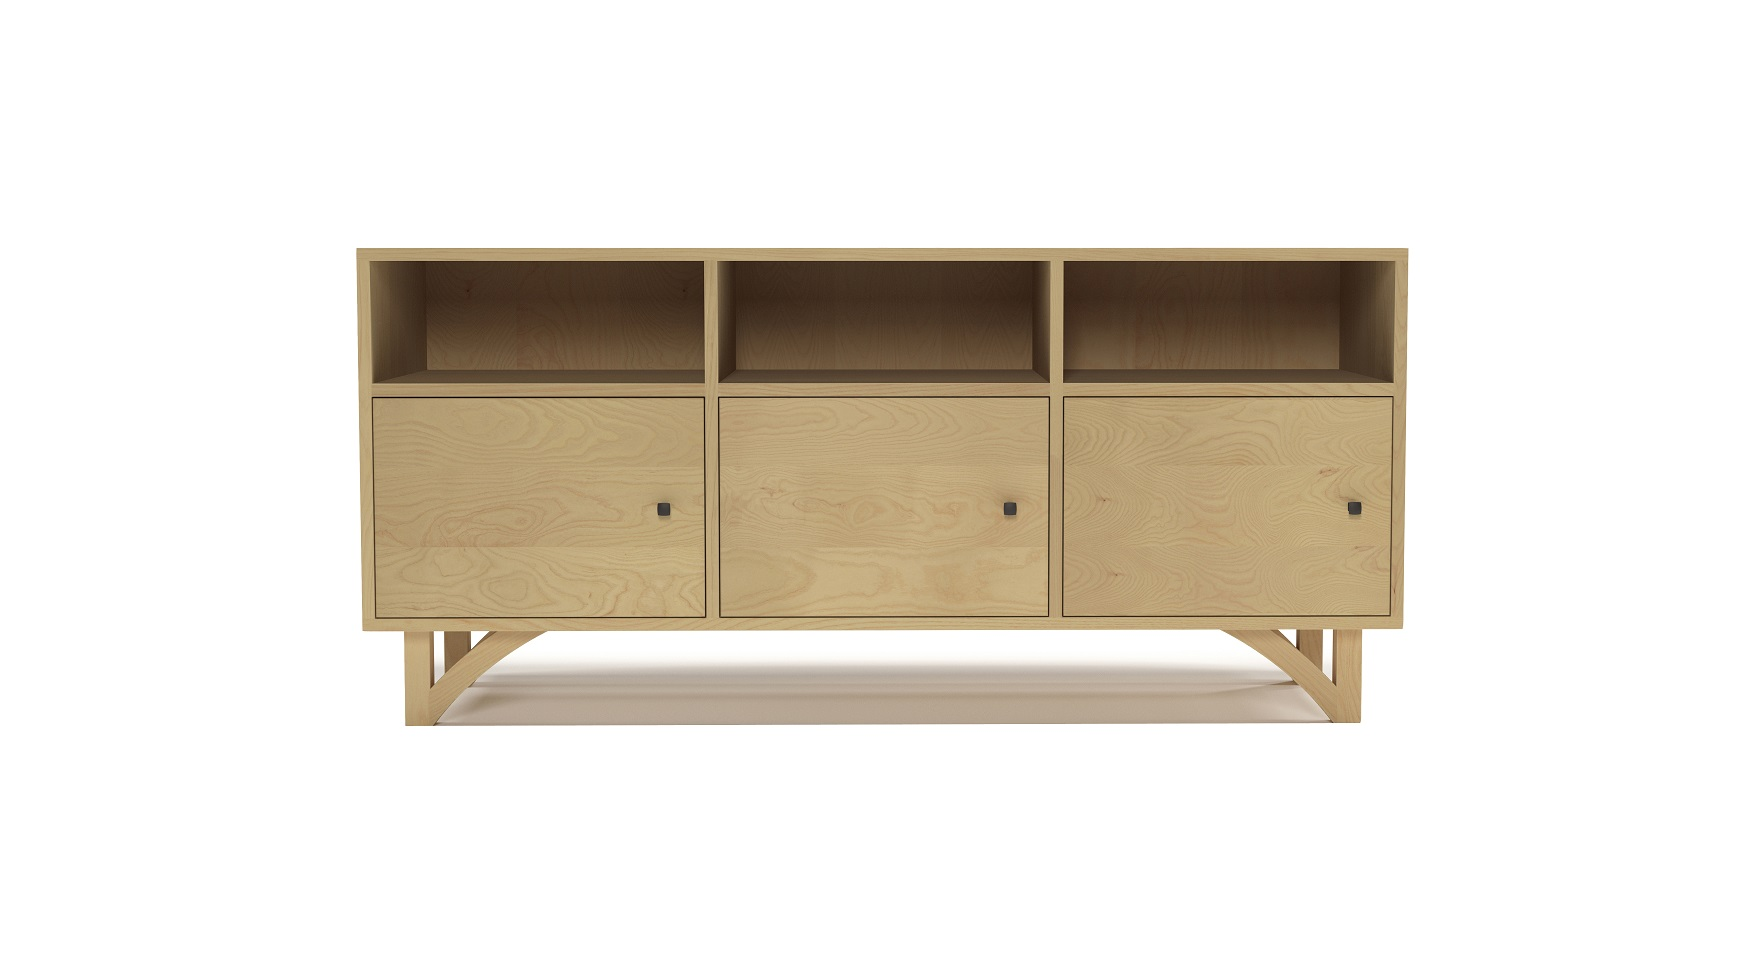 Ash modern furniture media cabinet with three doors and with hand-cut legs